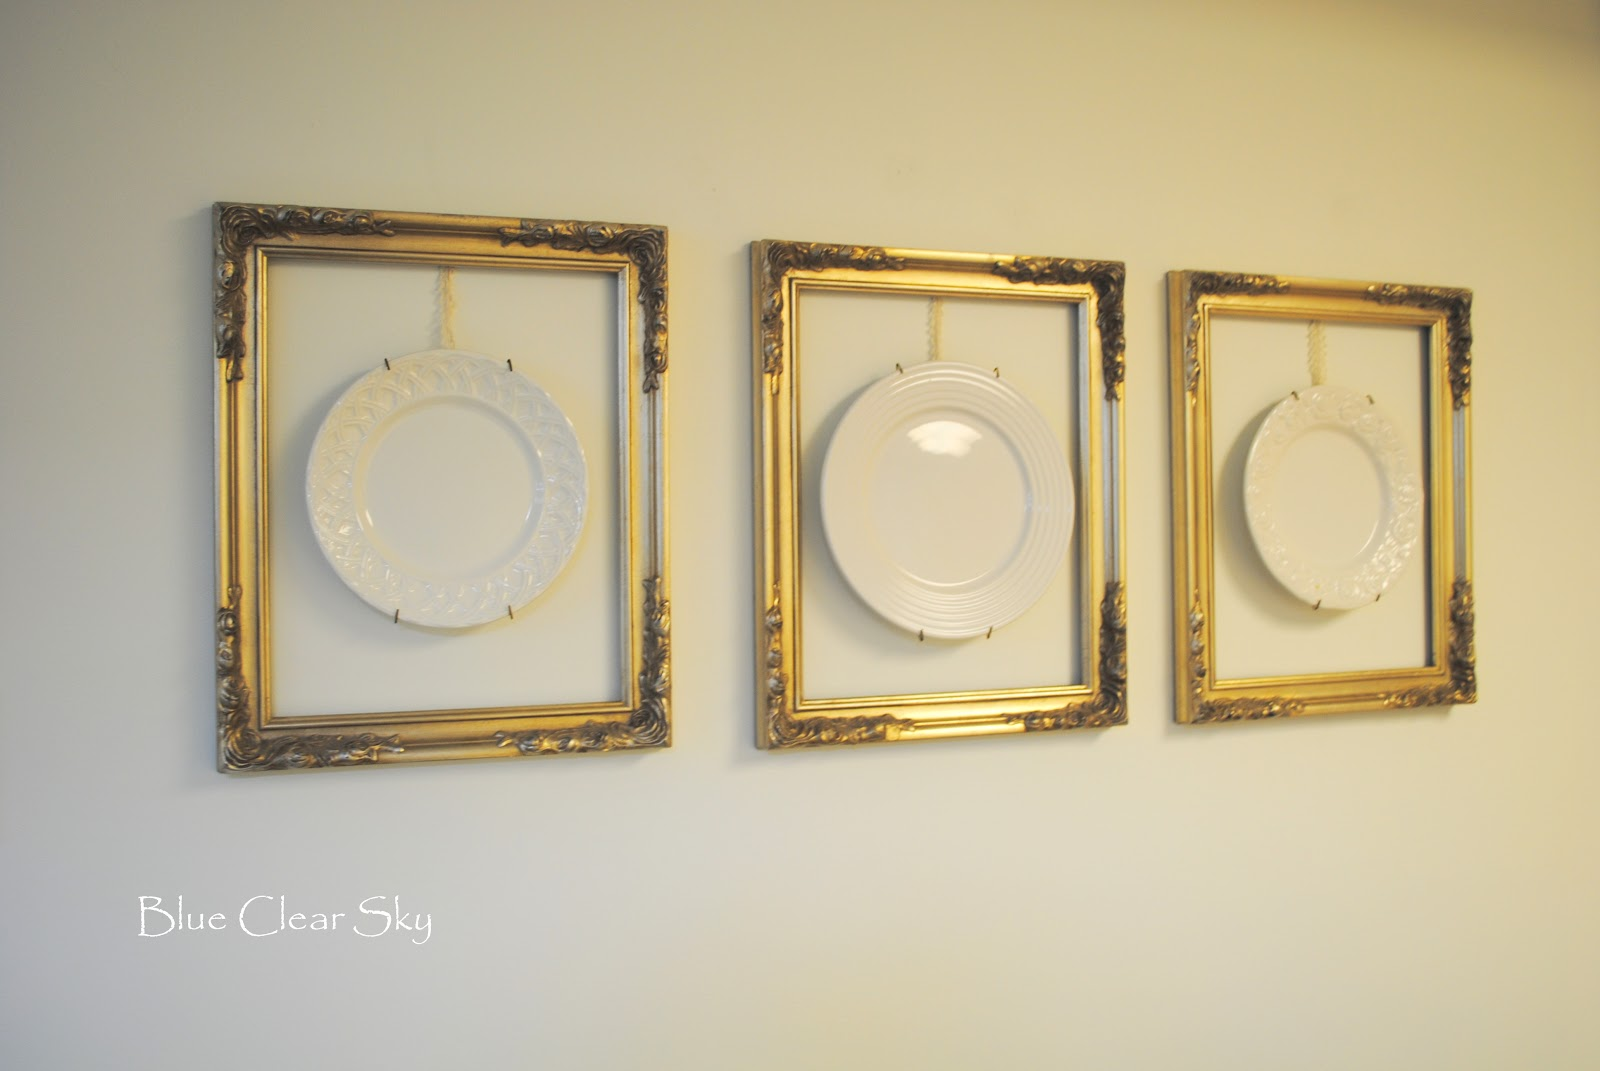 Displaying 15 gt images for homemade wall decorations for bedrooms